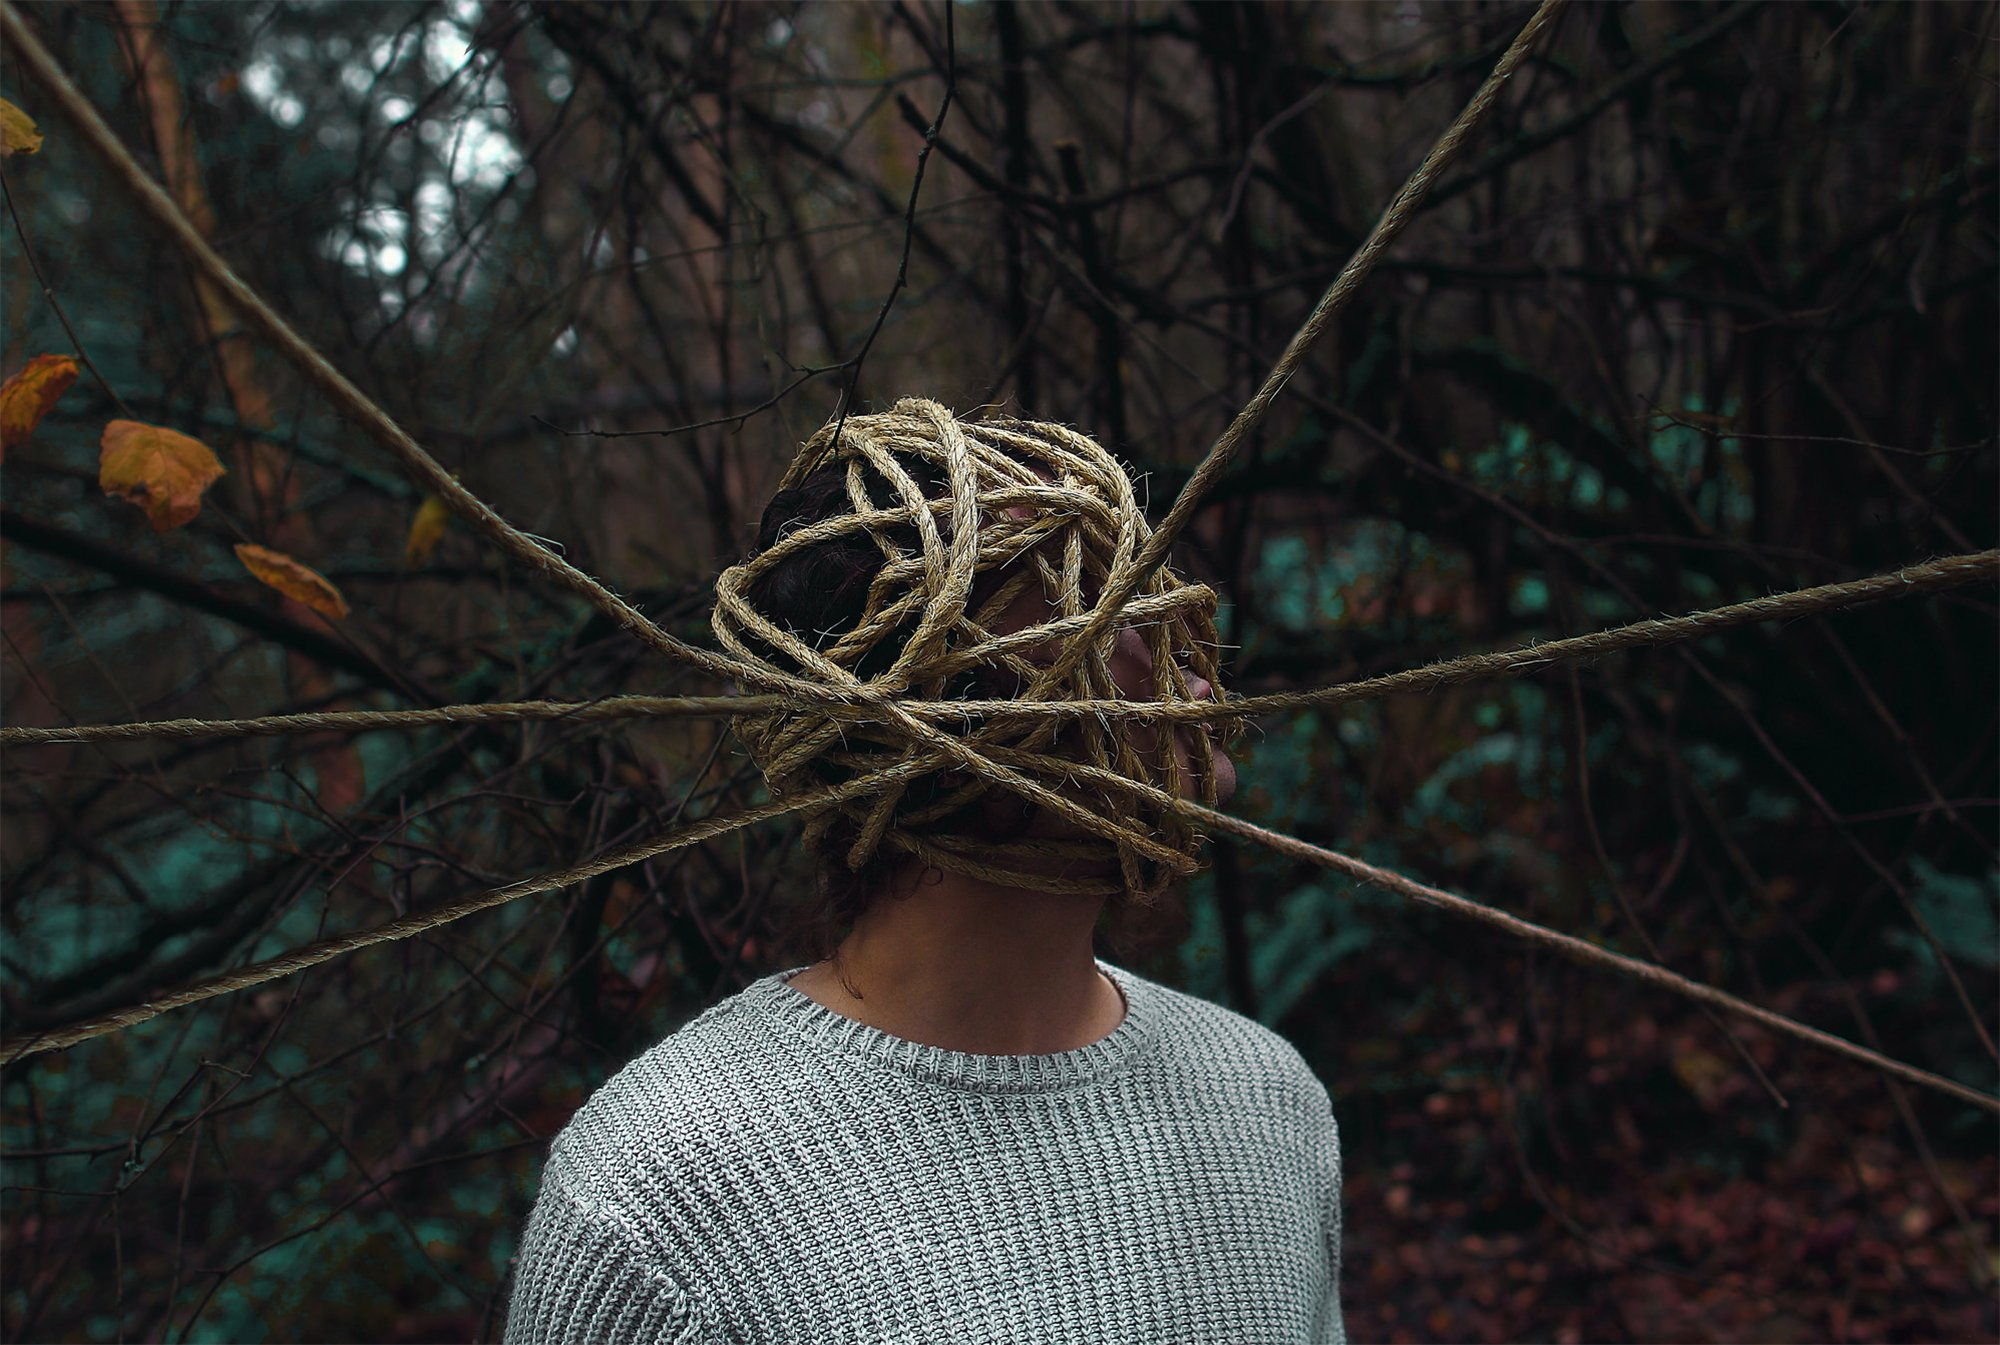 bound, rope tied to head, dark photography